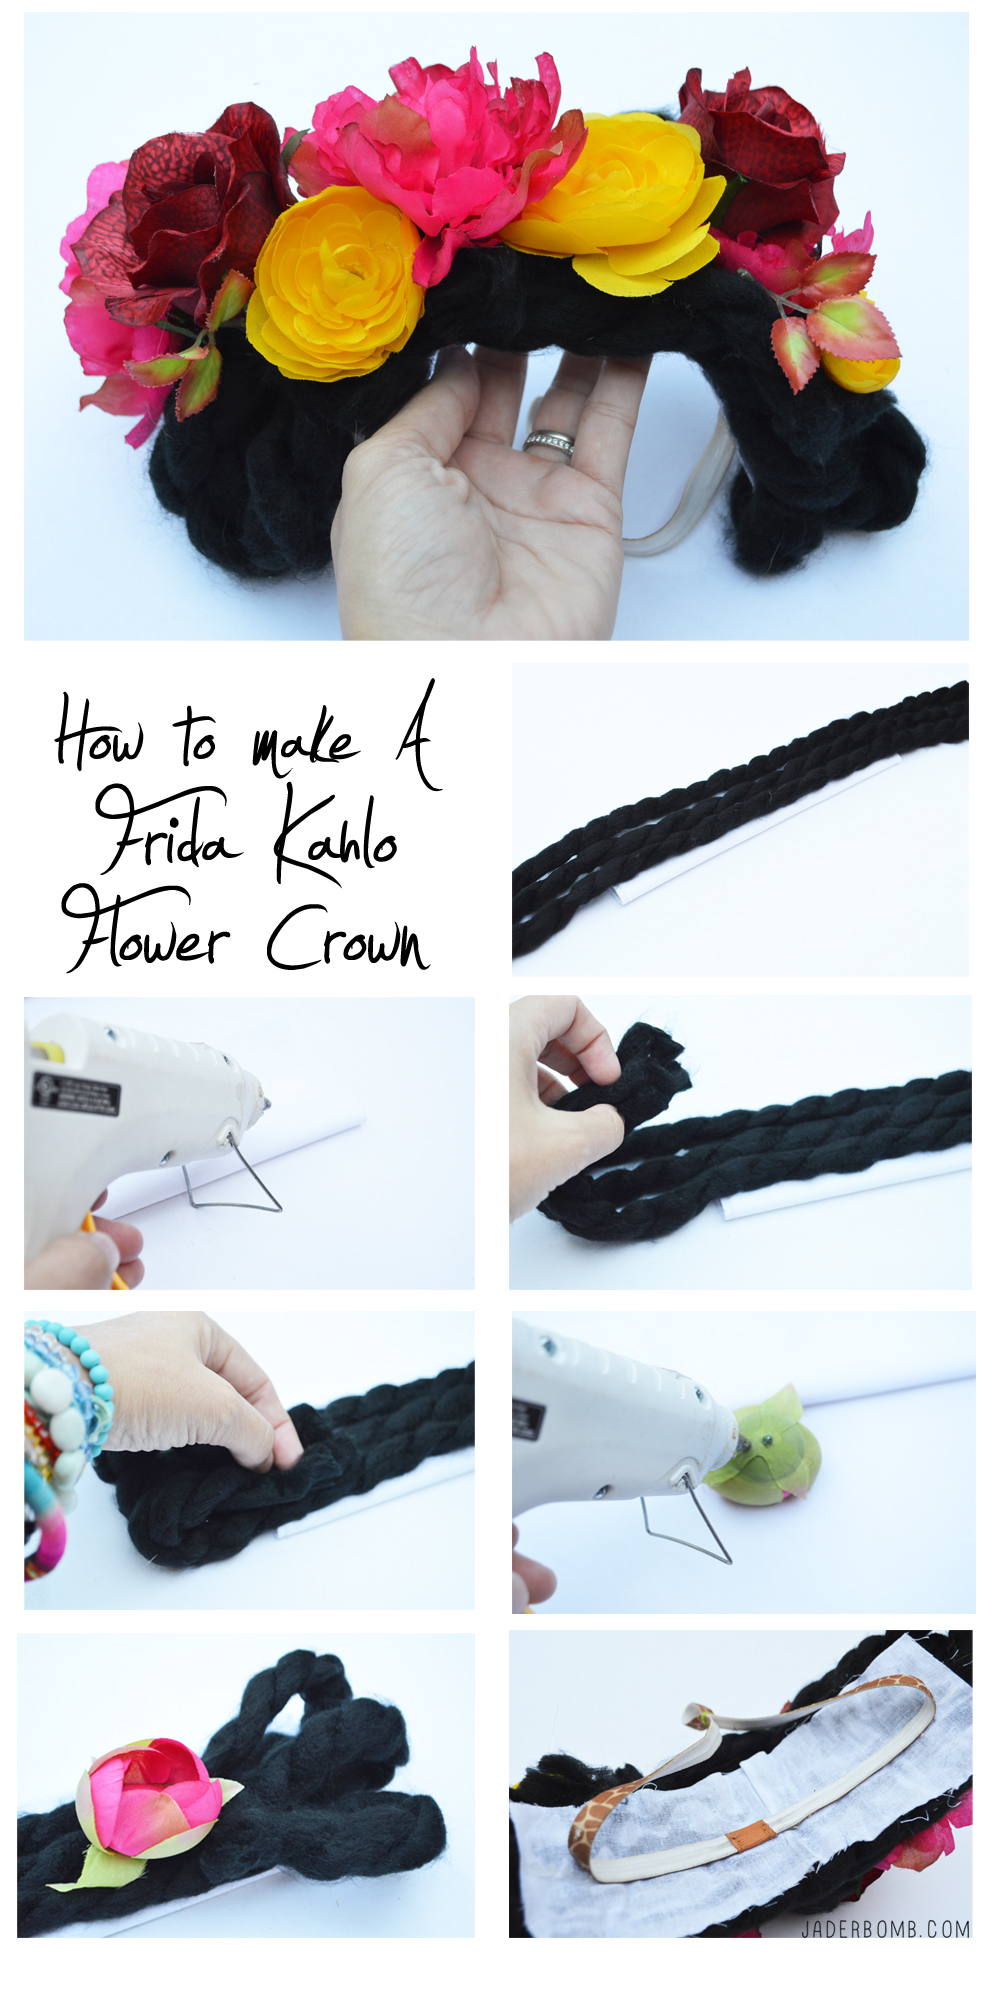 frida kahlo flower crown tutorial